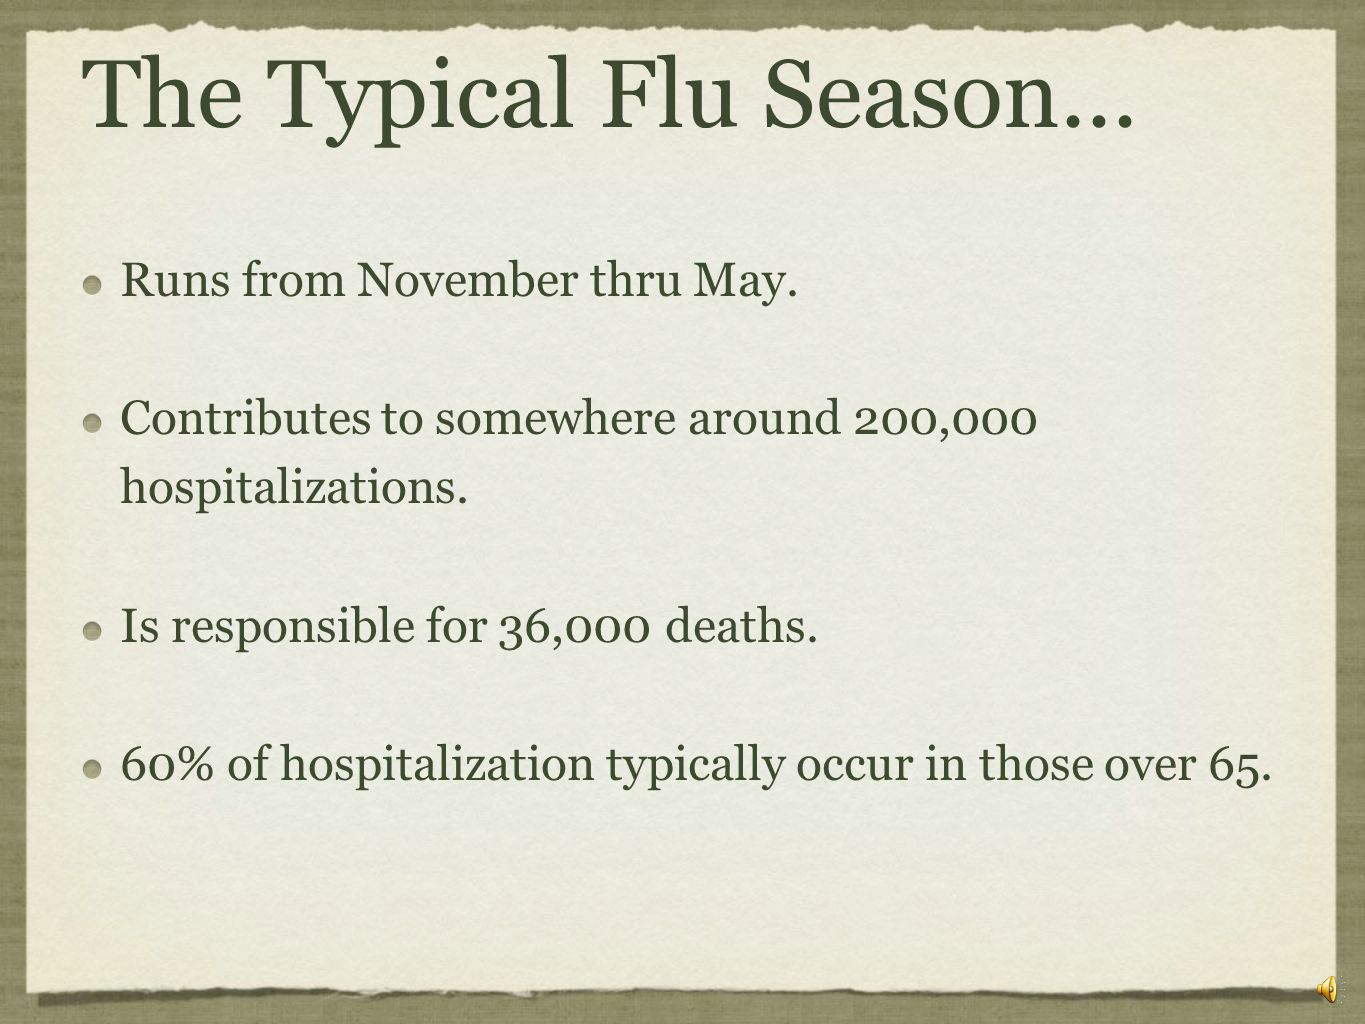 Match the flu 1) Spanish Flua) Pandemic of 1889 2) Avian Flub) H3N2 3) Asian Fluc) Pandemic of 1918 4) Hong Kong Flud) H5N1 5) Russian Flue) Pandemic of 1957